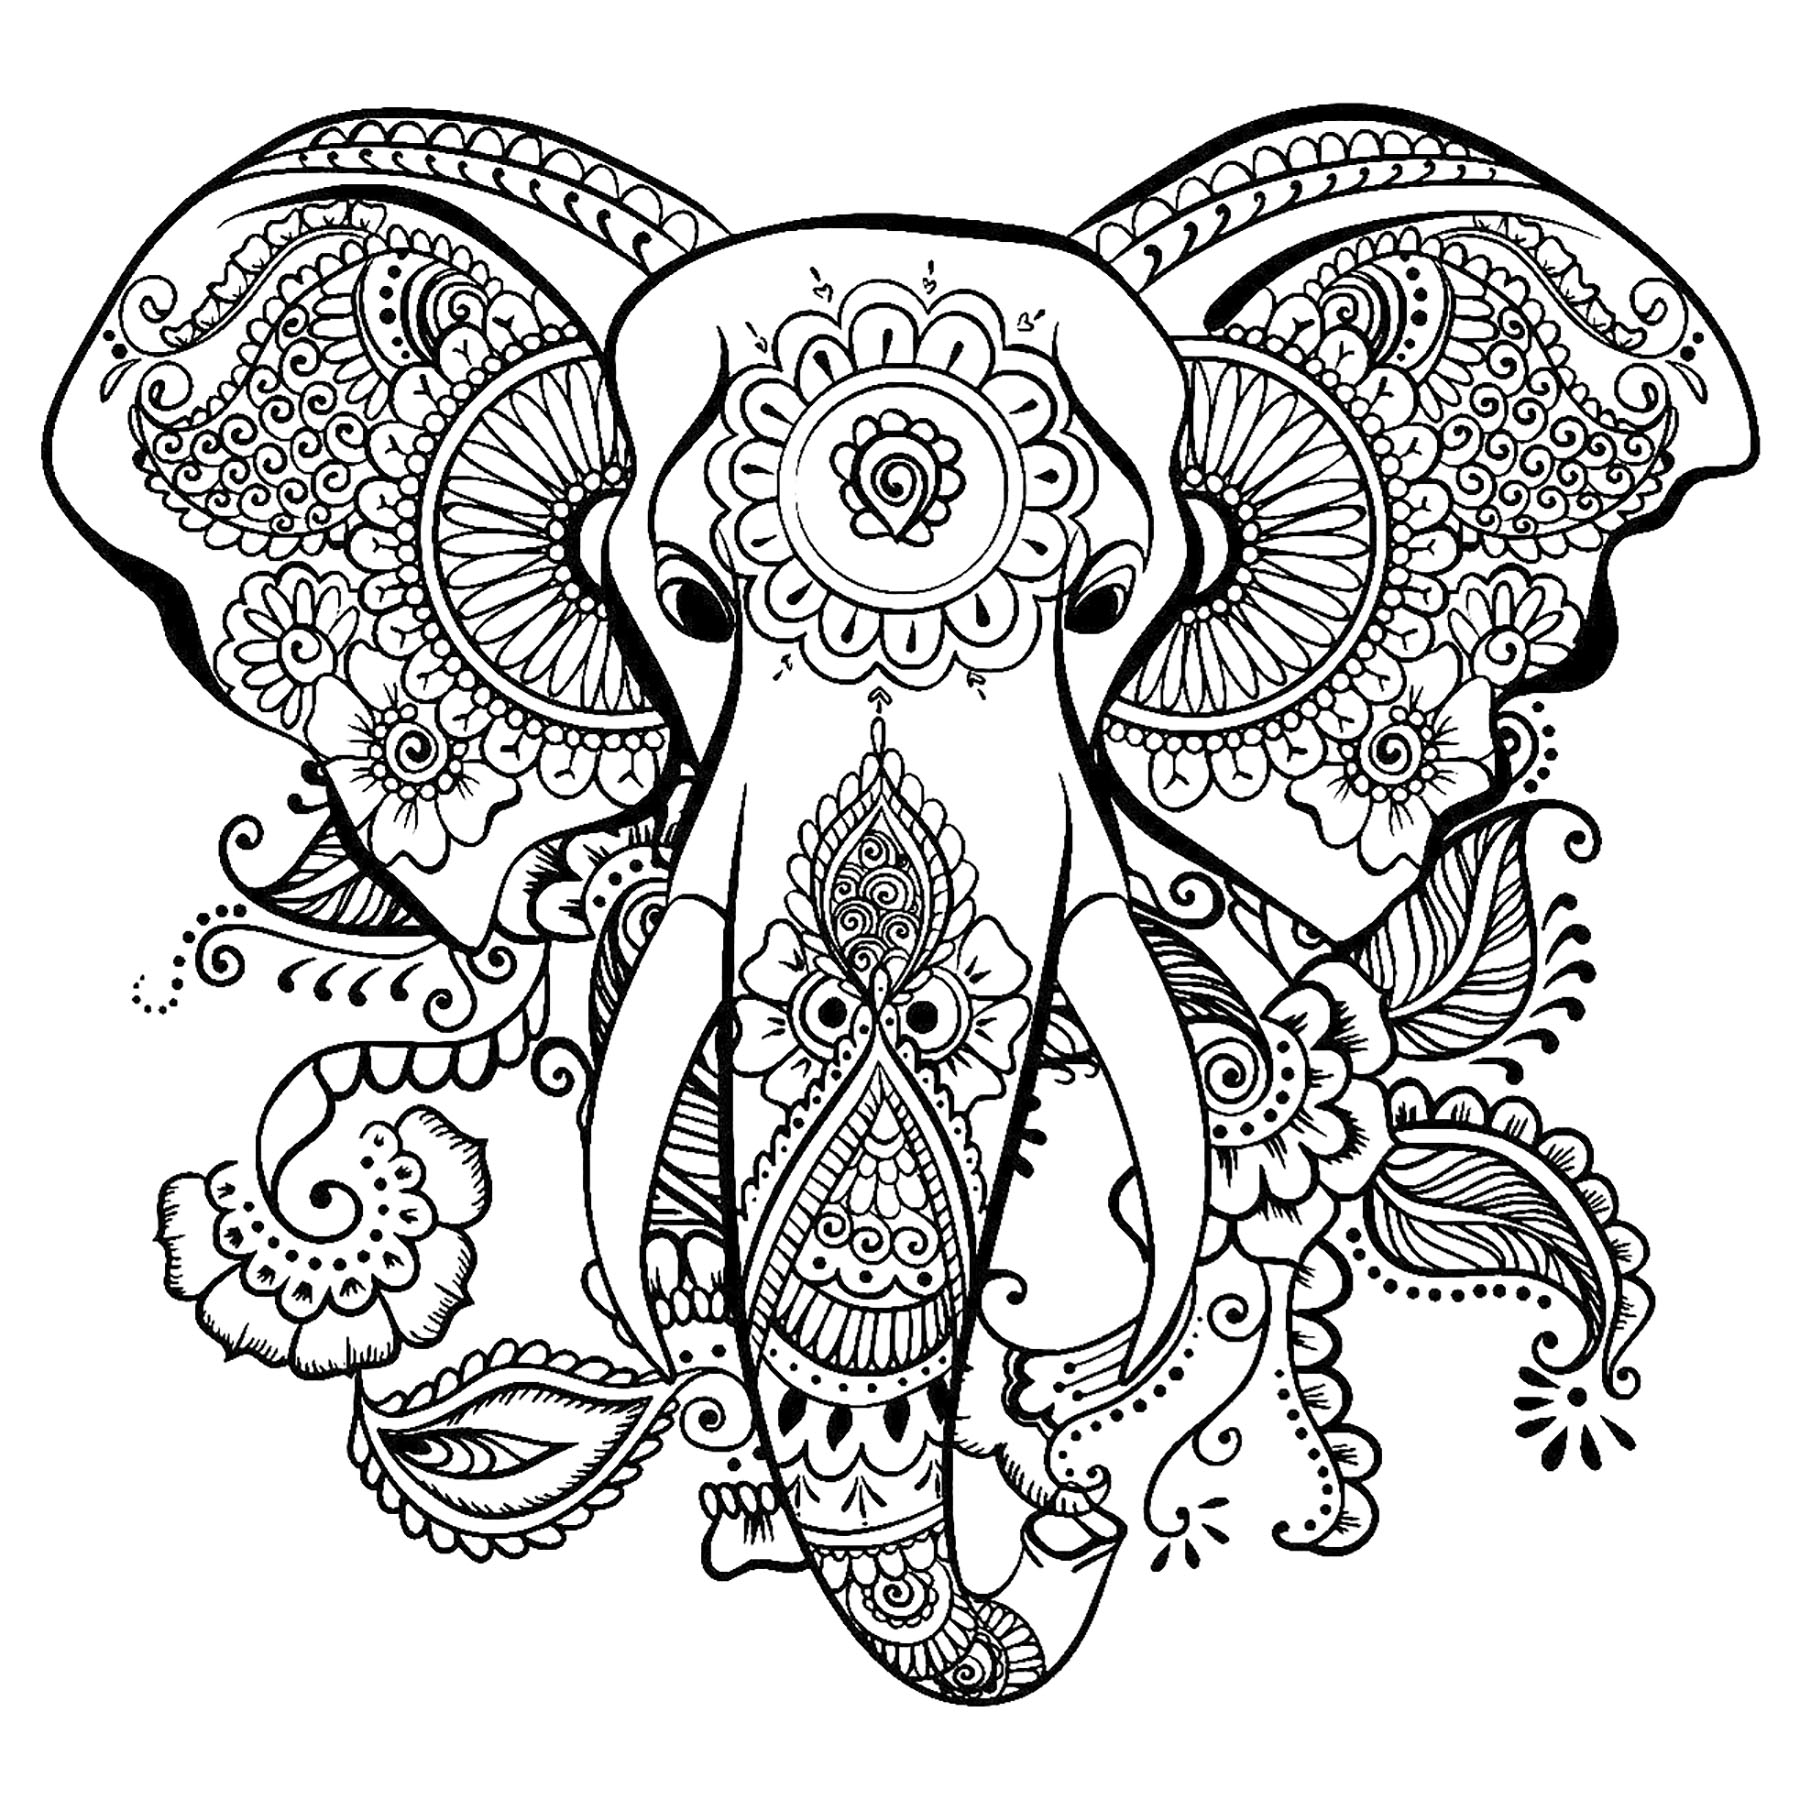 colouring picture of elephant elegant drawing of an elephant elephants adult coloring colouring elephant picture of